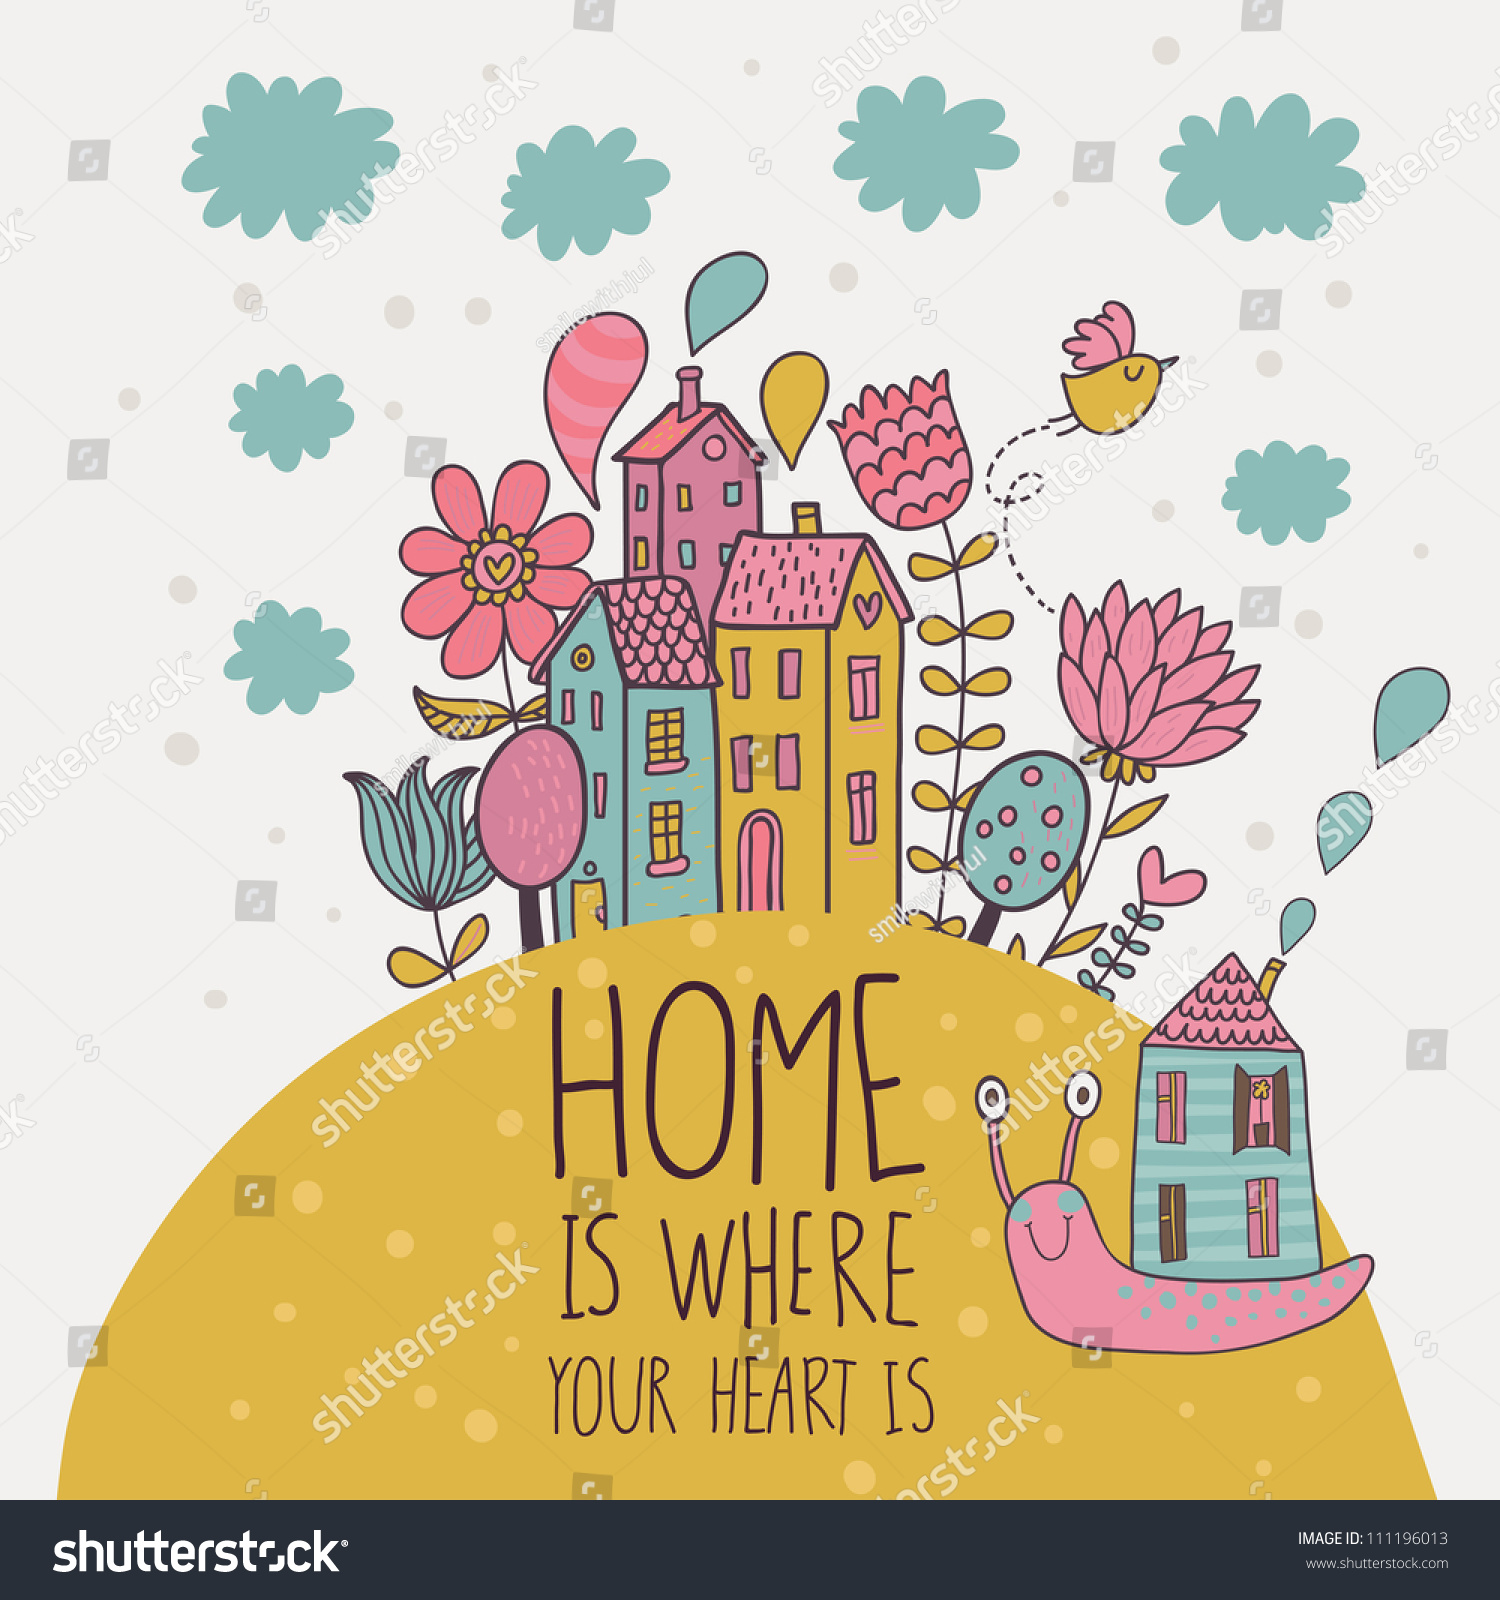 home where you heart is cartoon stock vector 111196013 shutterstock. Black Bedroom Furniture Sets. Home Design Ideas